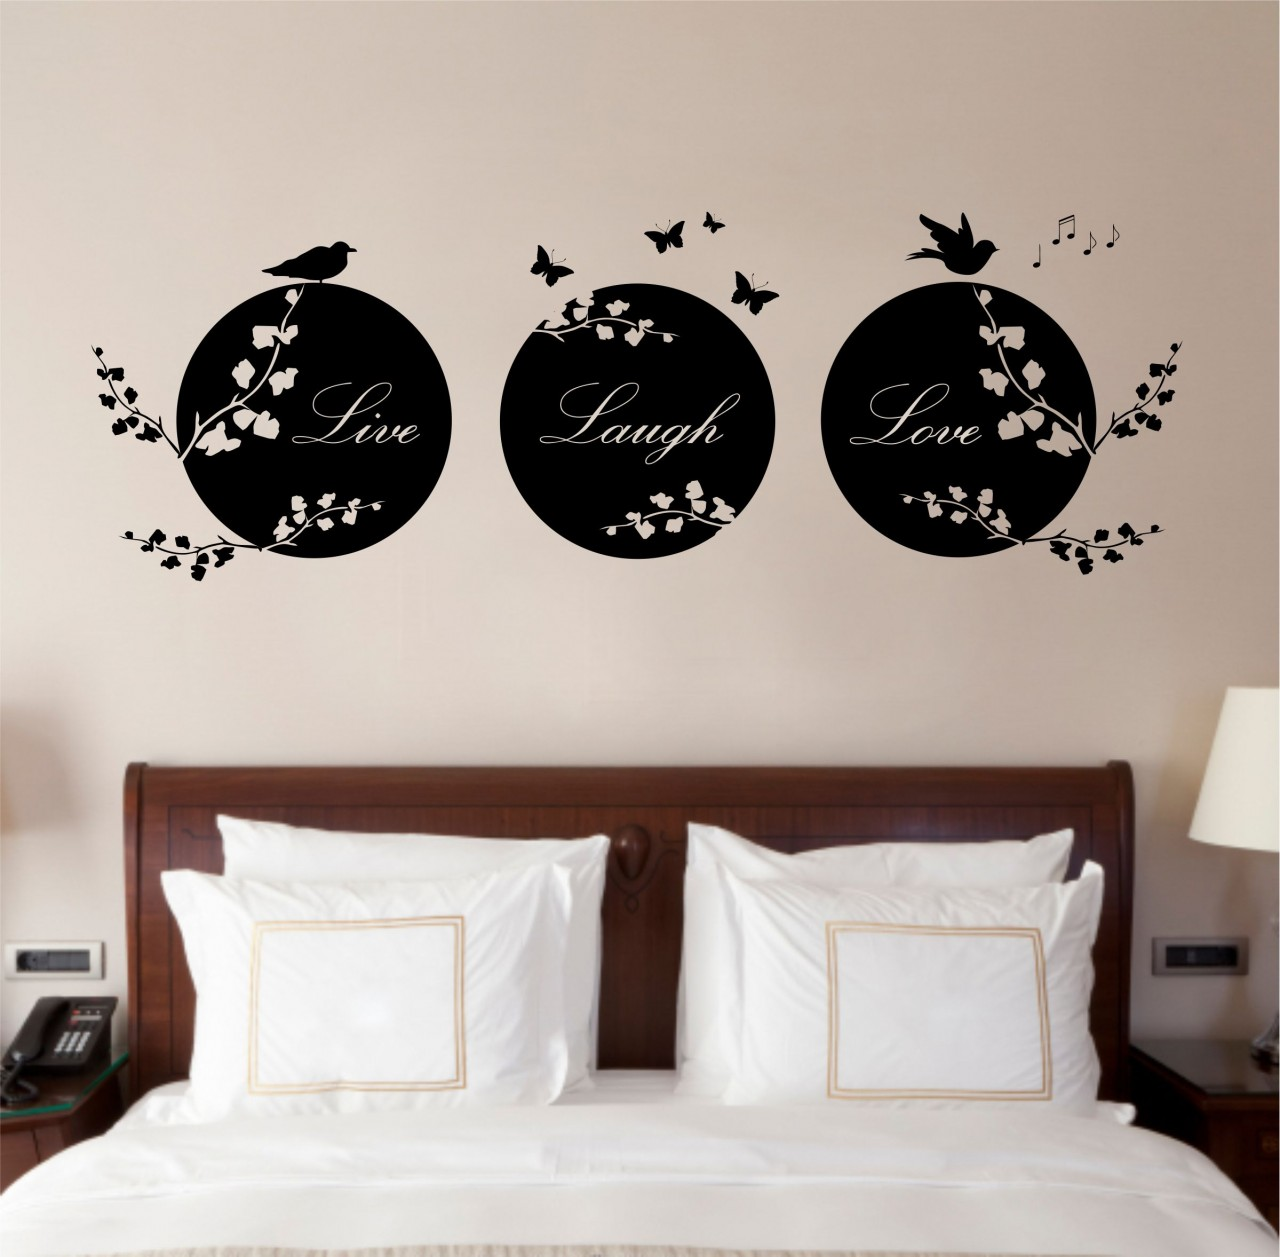 Vinyl wall art vinyl wall art craft room vinyl wall Wall stickers for bedrooms